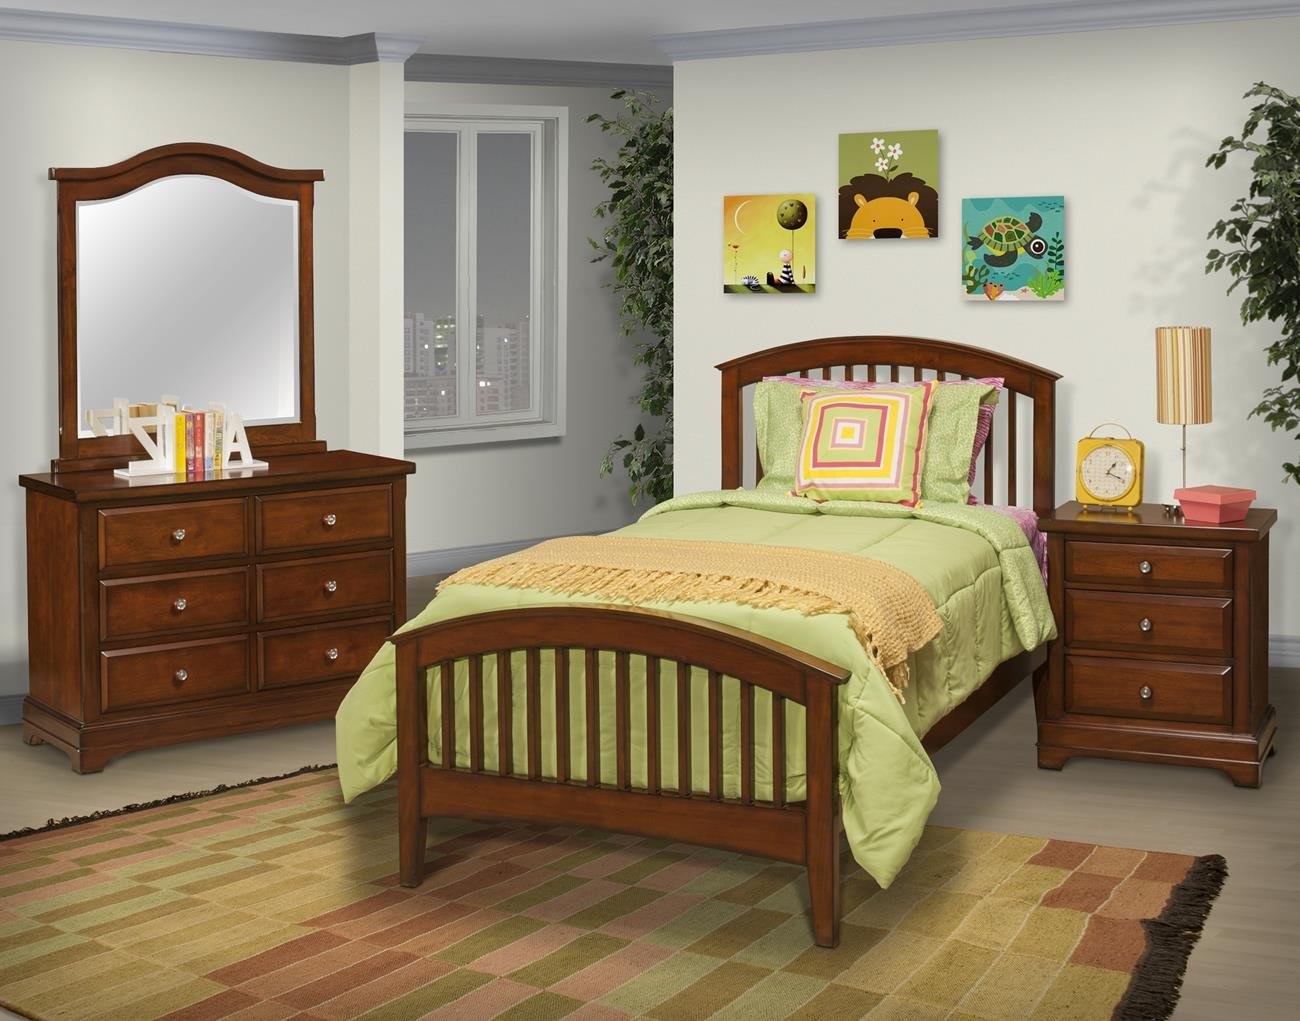 Sandpoint 5 Piece Twin Slat Bedroom Set with 2 Nightstands in Tobacco